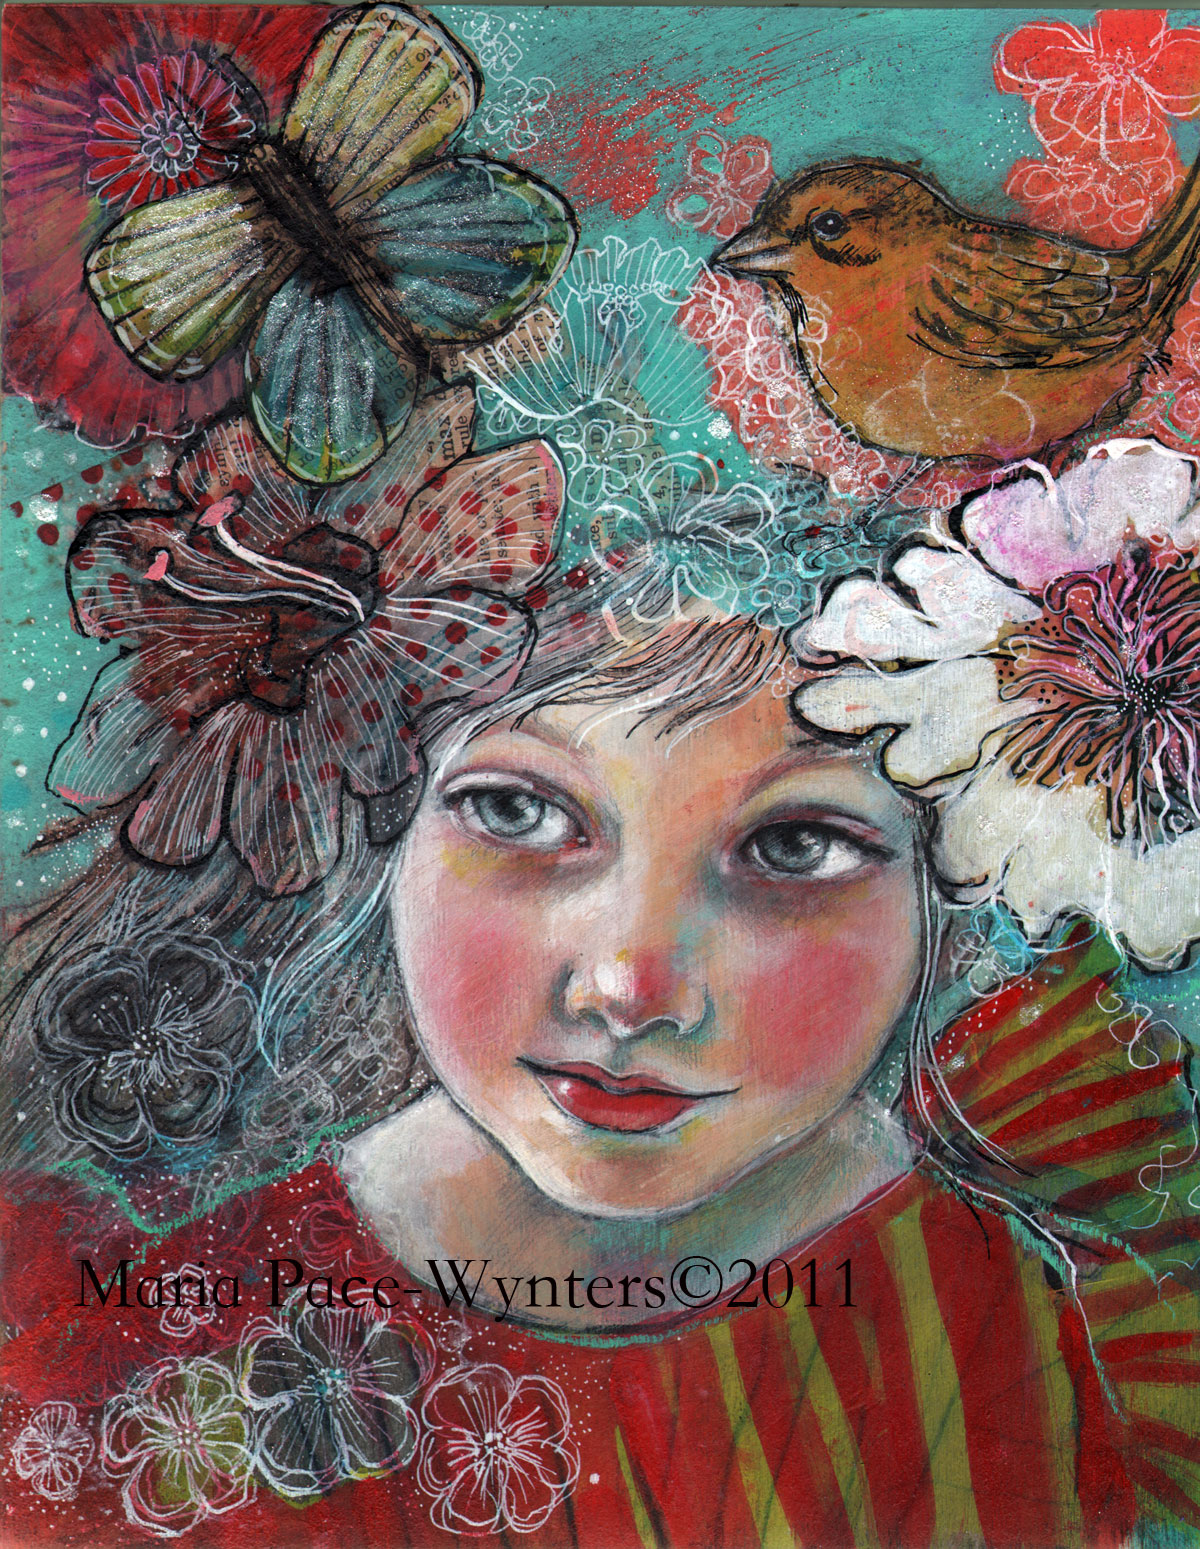 January 2011 maria pace wynters - The hideout in the woods an artists dream ...